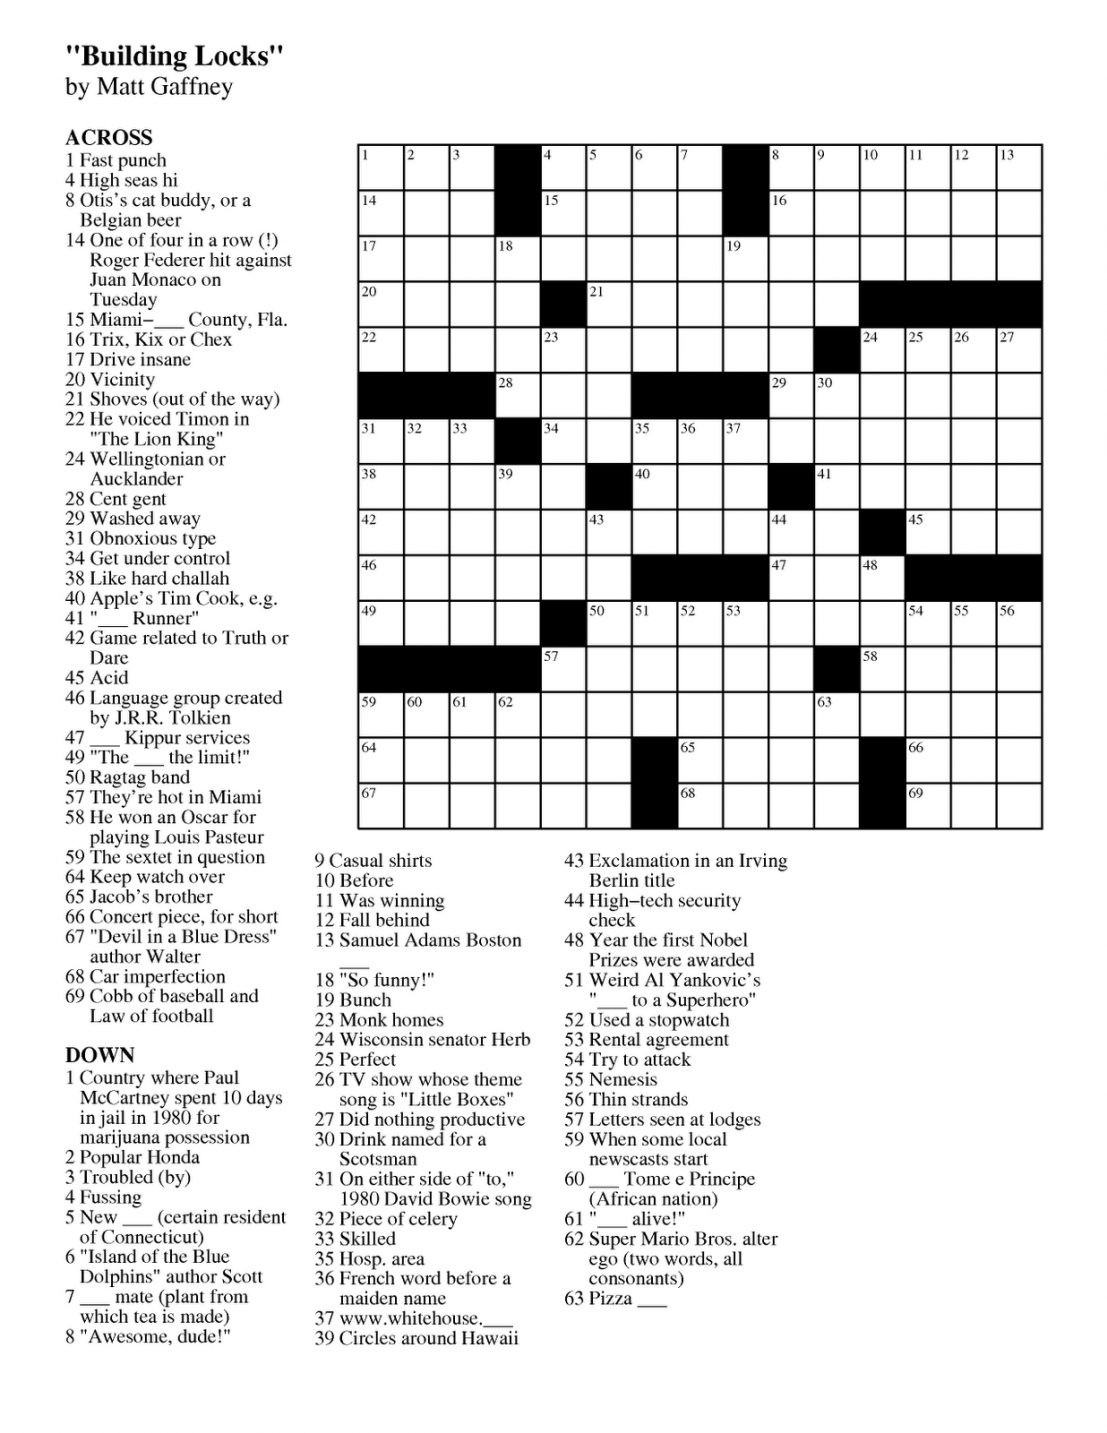 Tools Atozteacherstuff Freetable Crossword Puzzle Maker Easy - Free Printable Fill In Puzzles Online